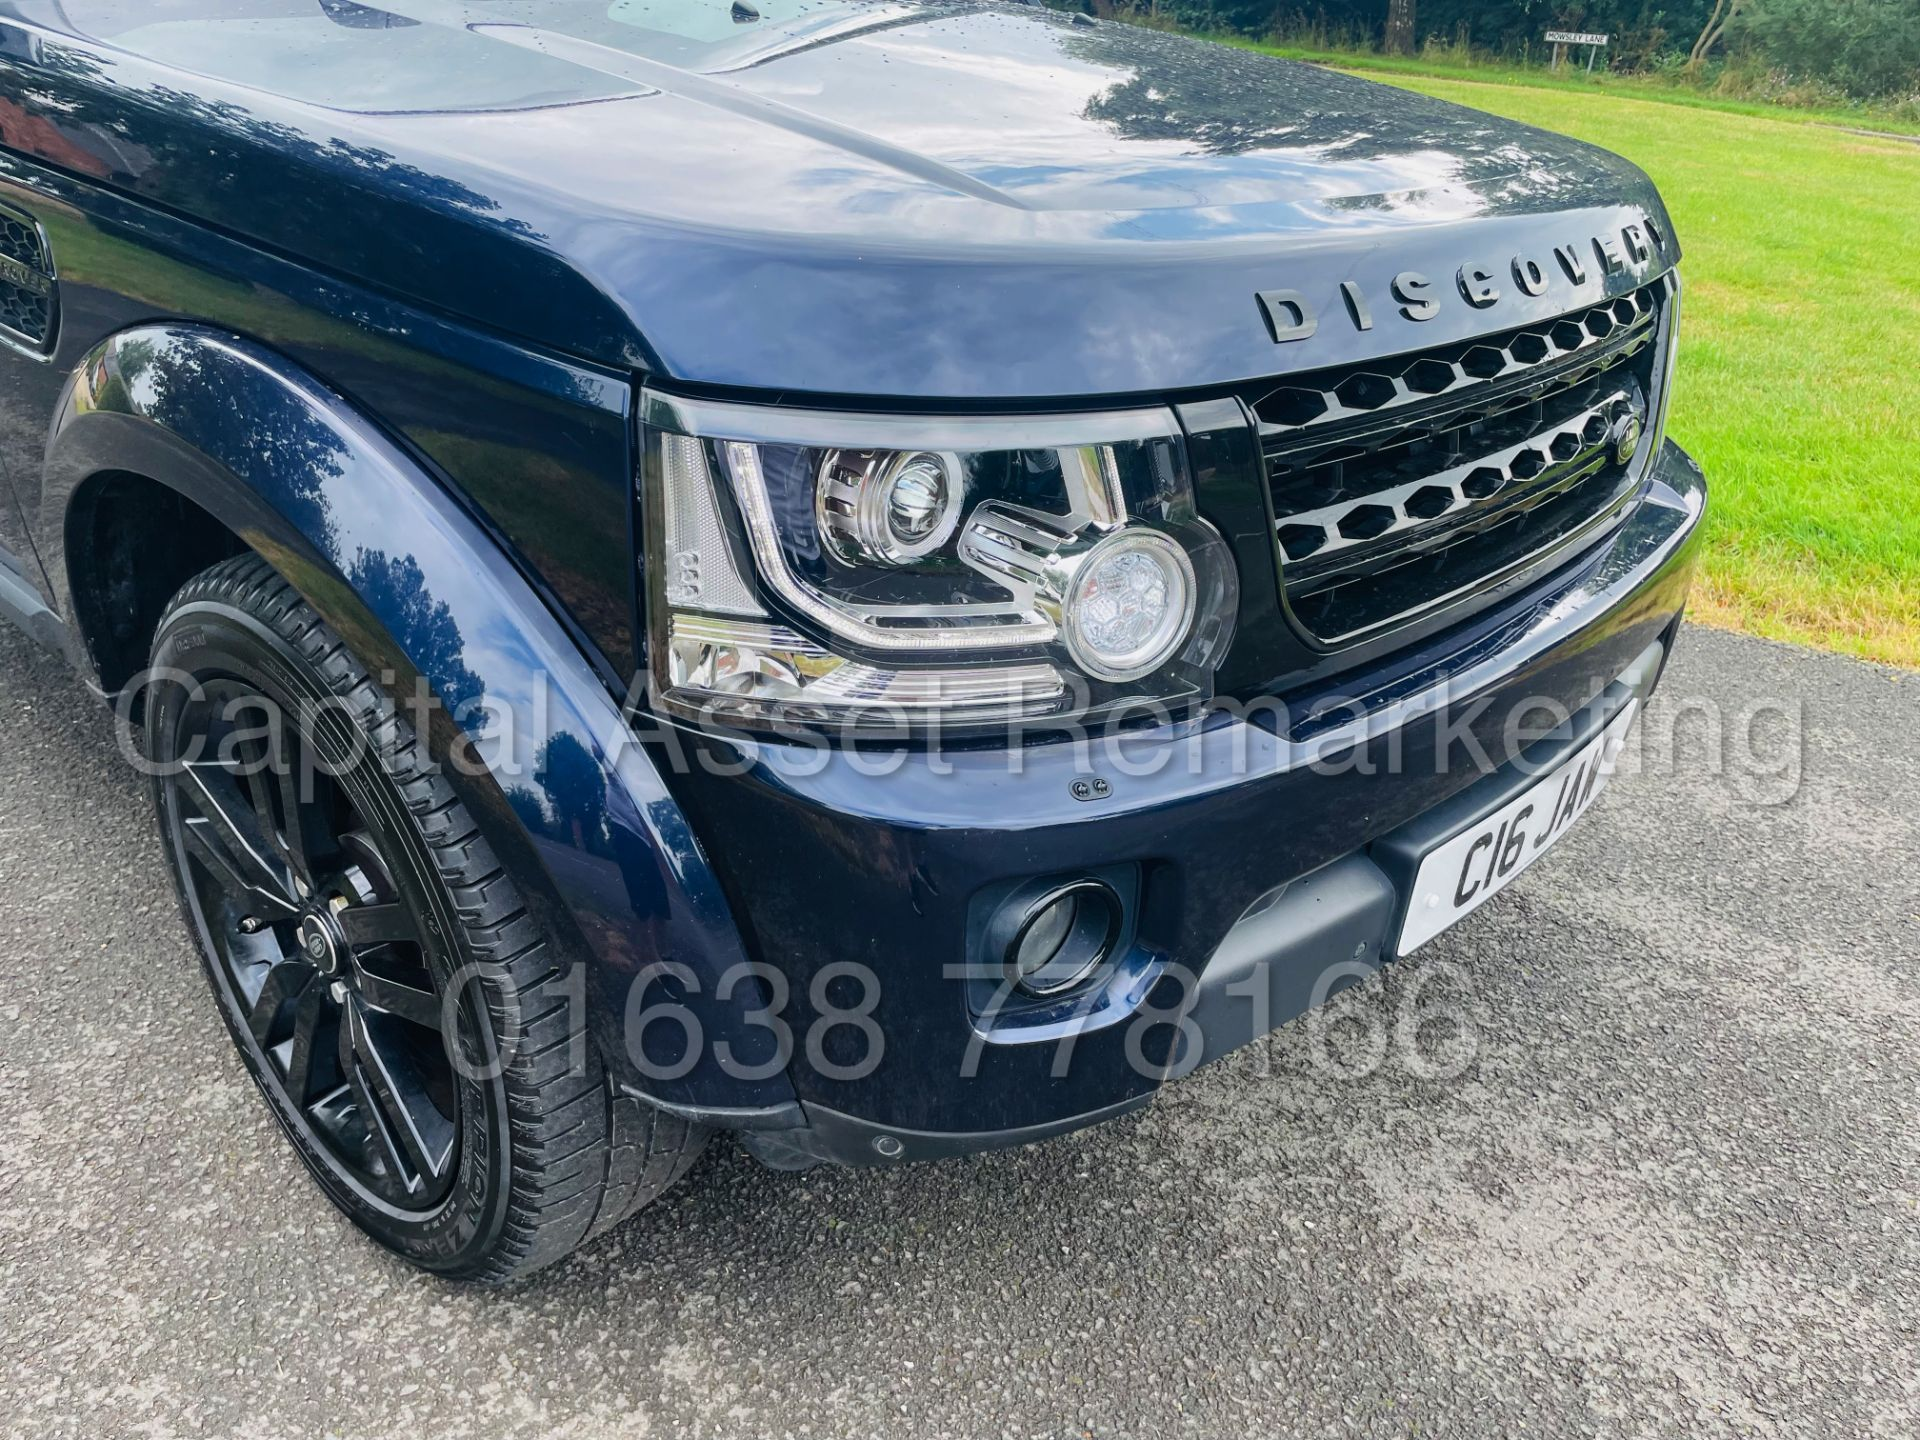 LAND ROVER DISCOVERY 4 *HSE* 7 SEATER SUV (2014 - NEW MODEL) '3.0 SDV6 - 255 BHP - 8 SPEED AUTO' - Image 15 of 61